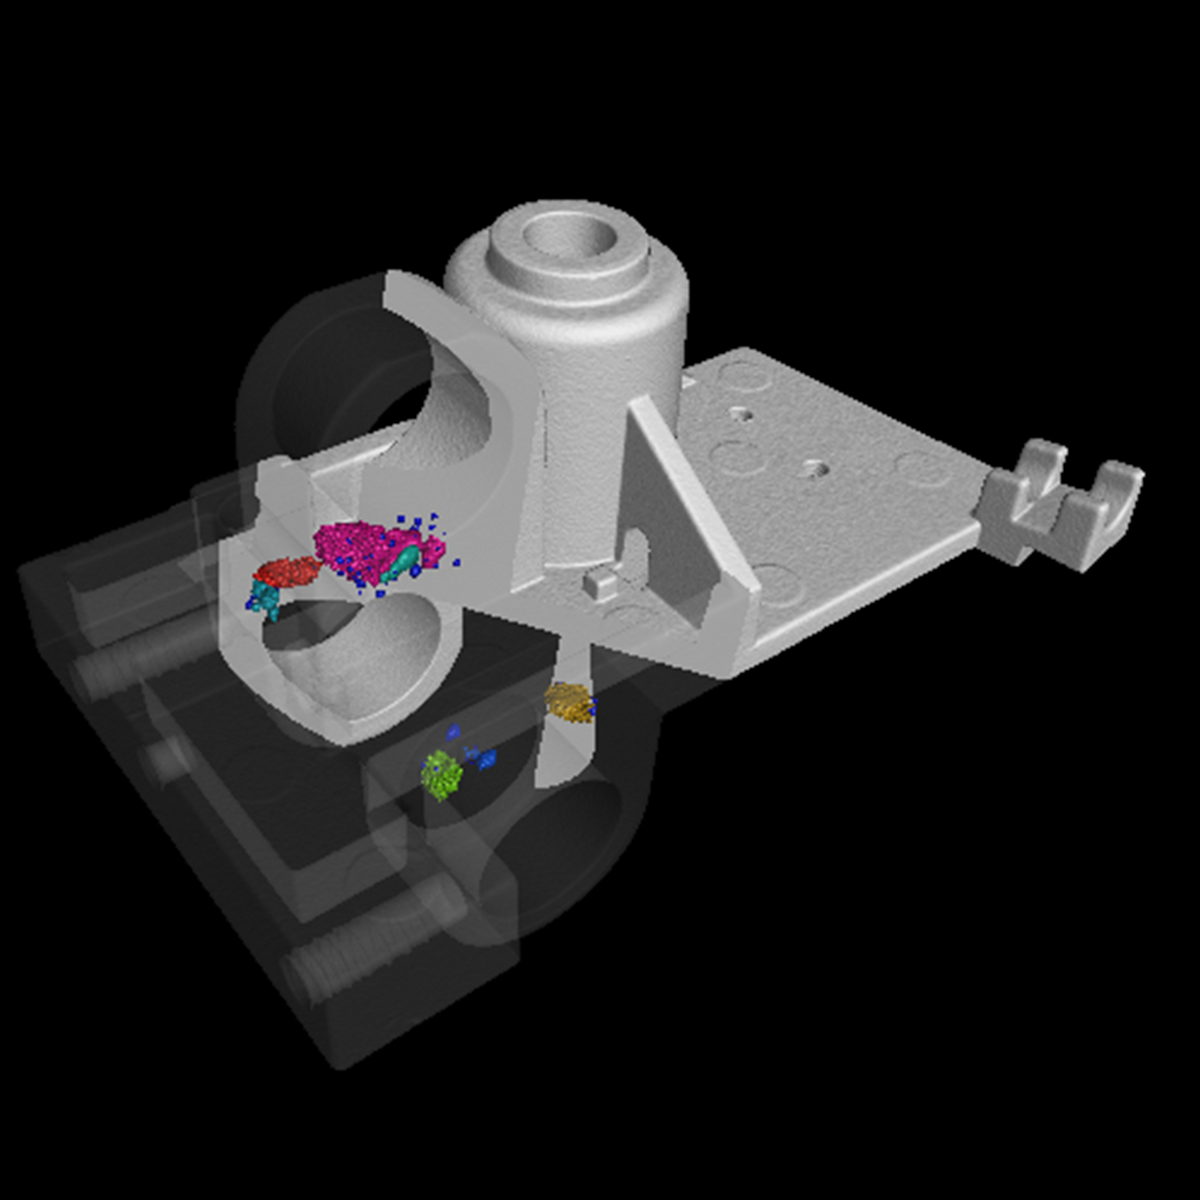 Industrial CT scanning services allows analysis of hidden elements